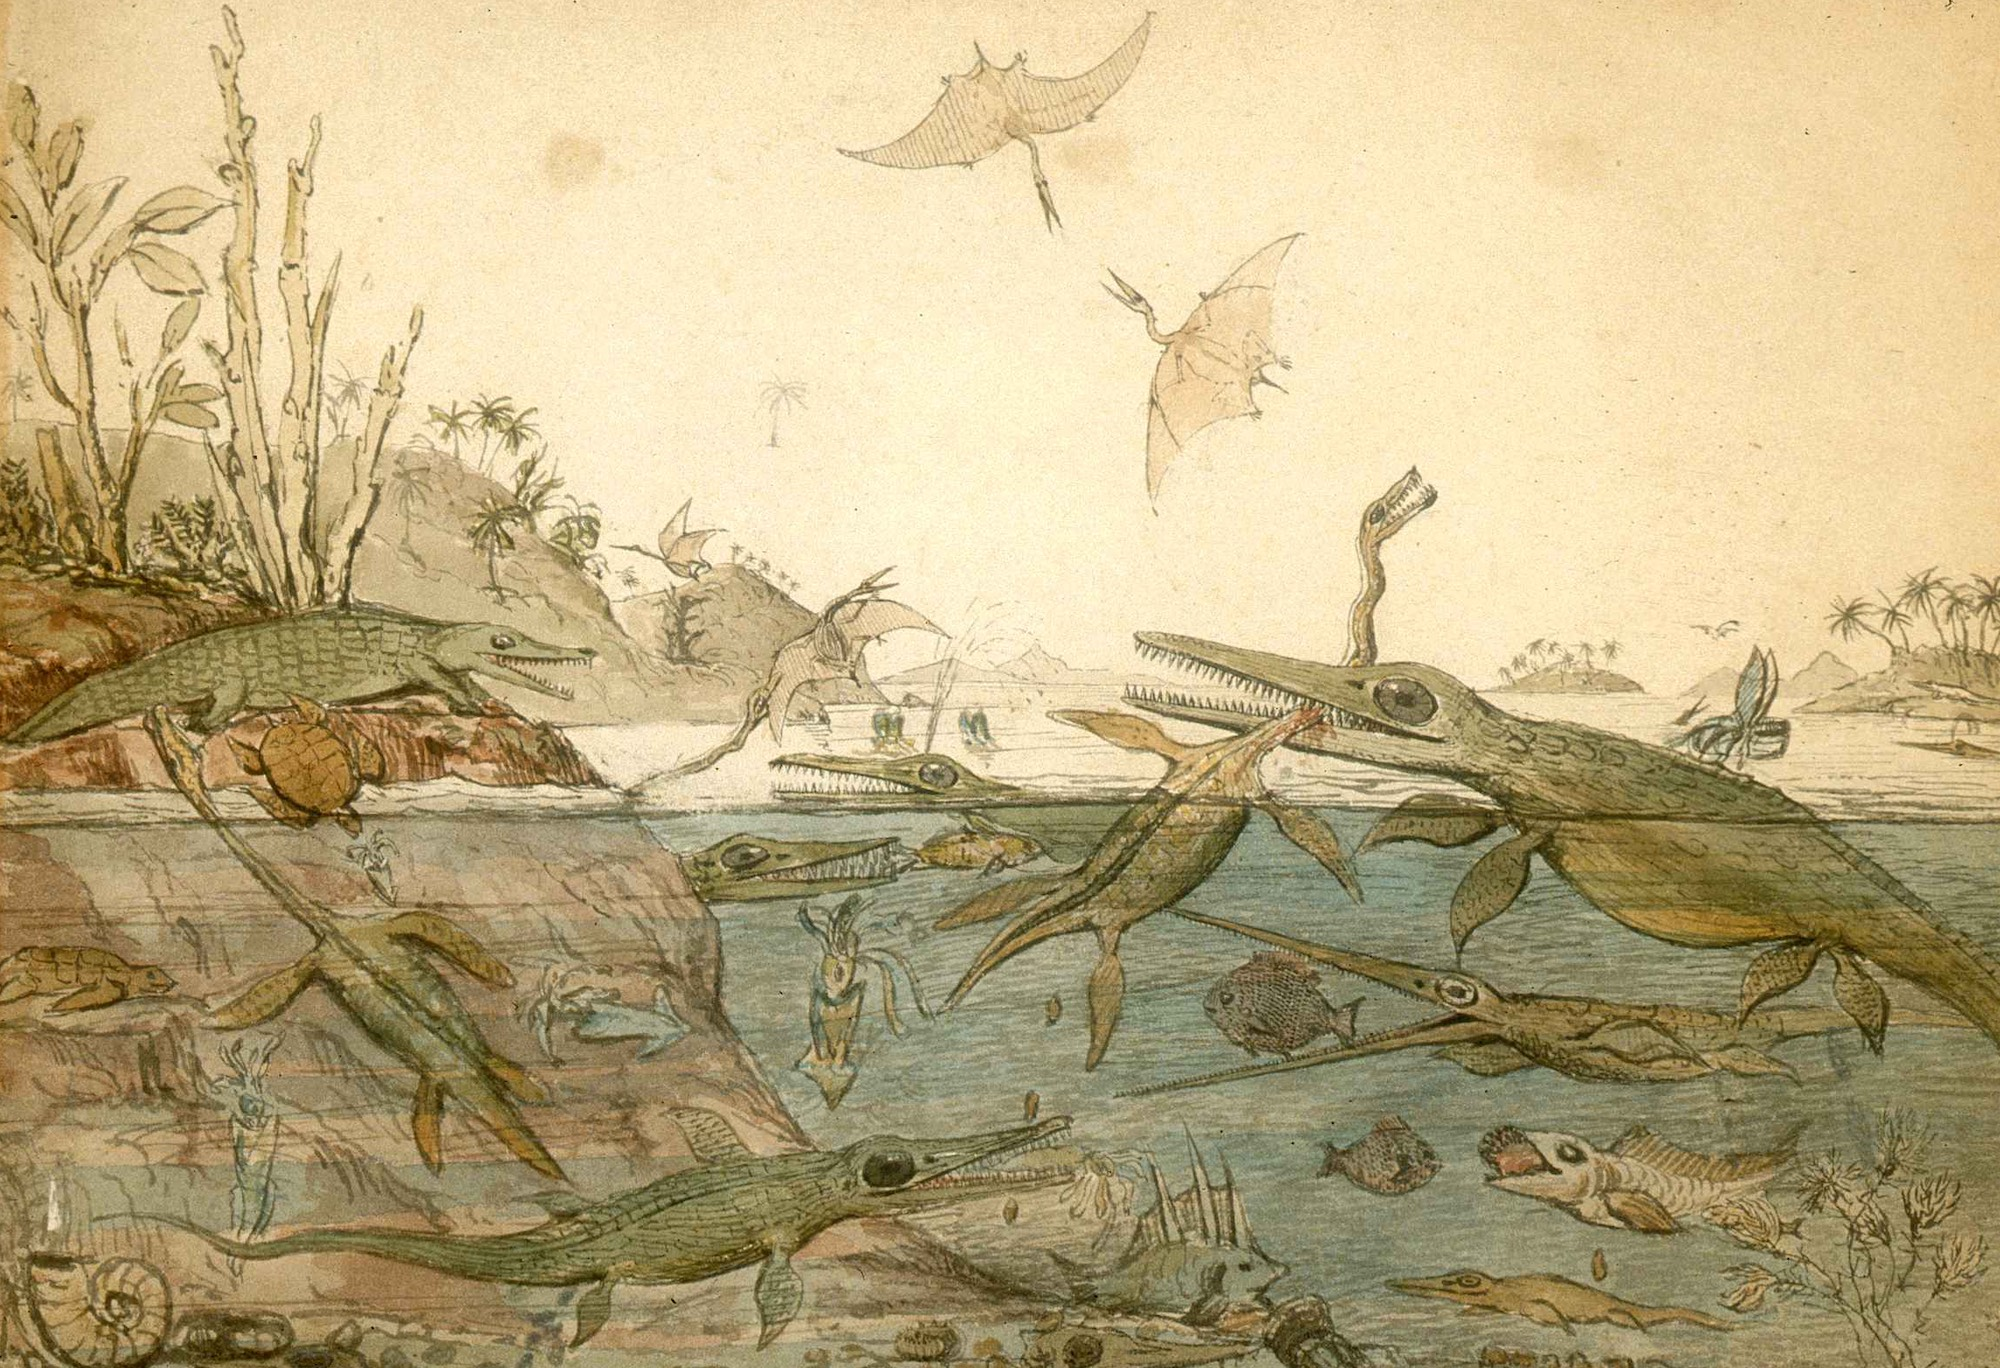 watercolor painting of many prehistoric creatures in water and the sky